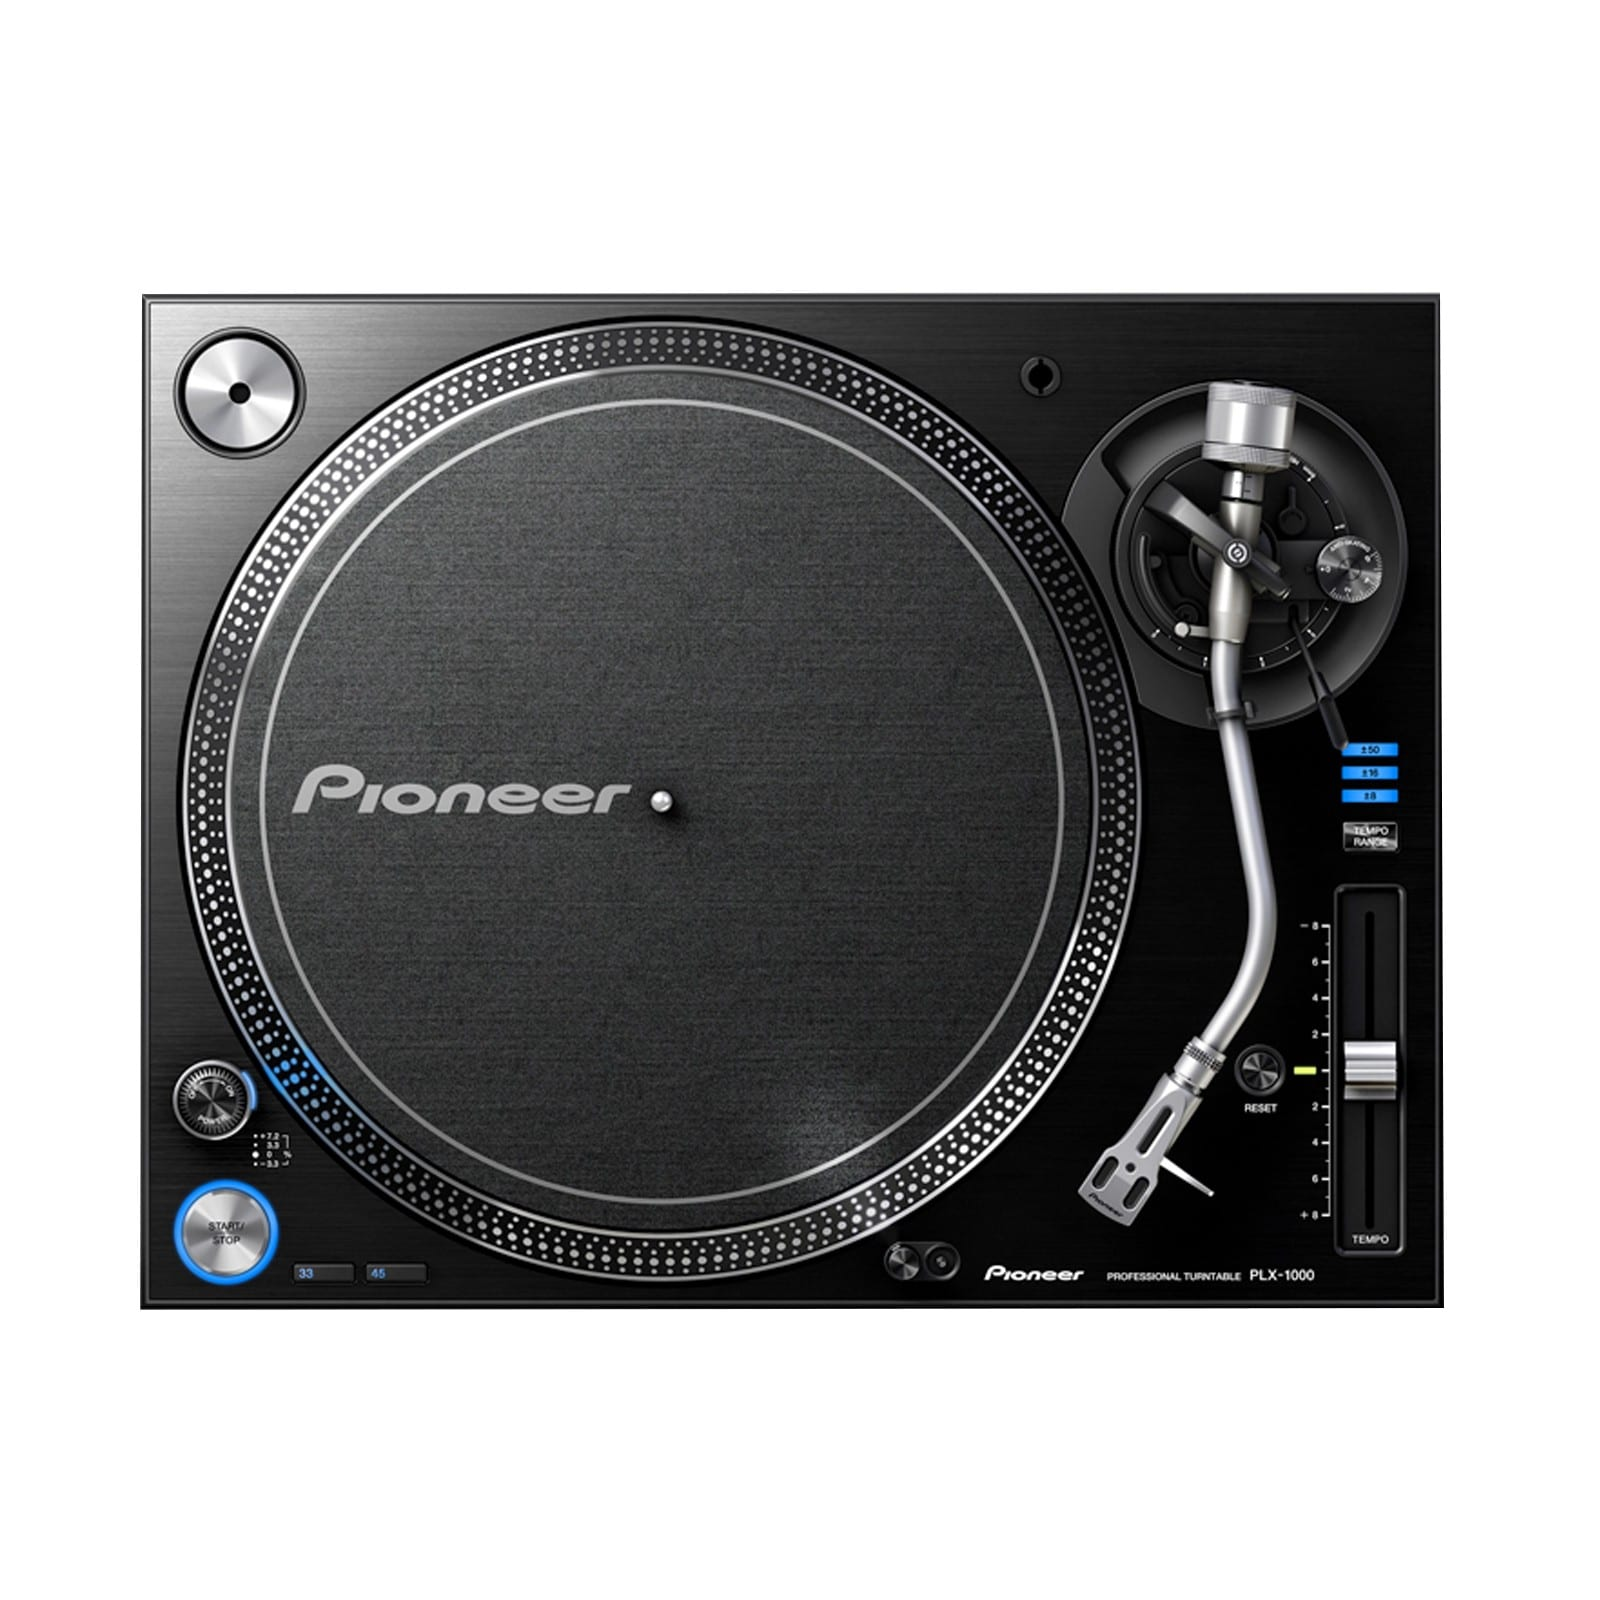 pioneer-plx-1000-professional-turntable--66a